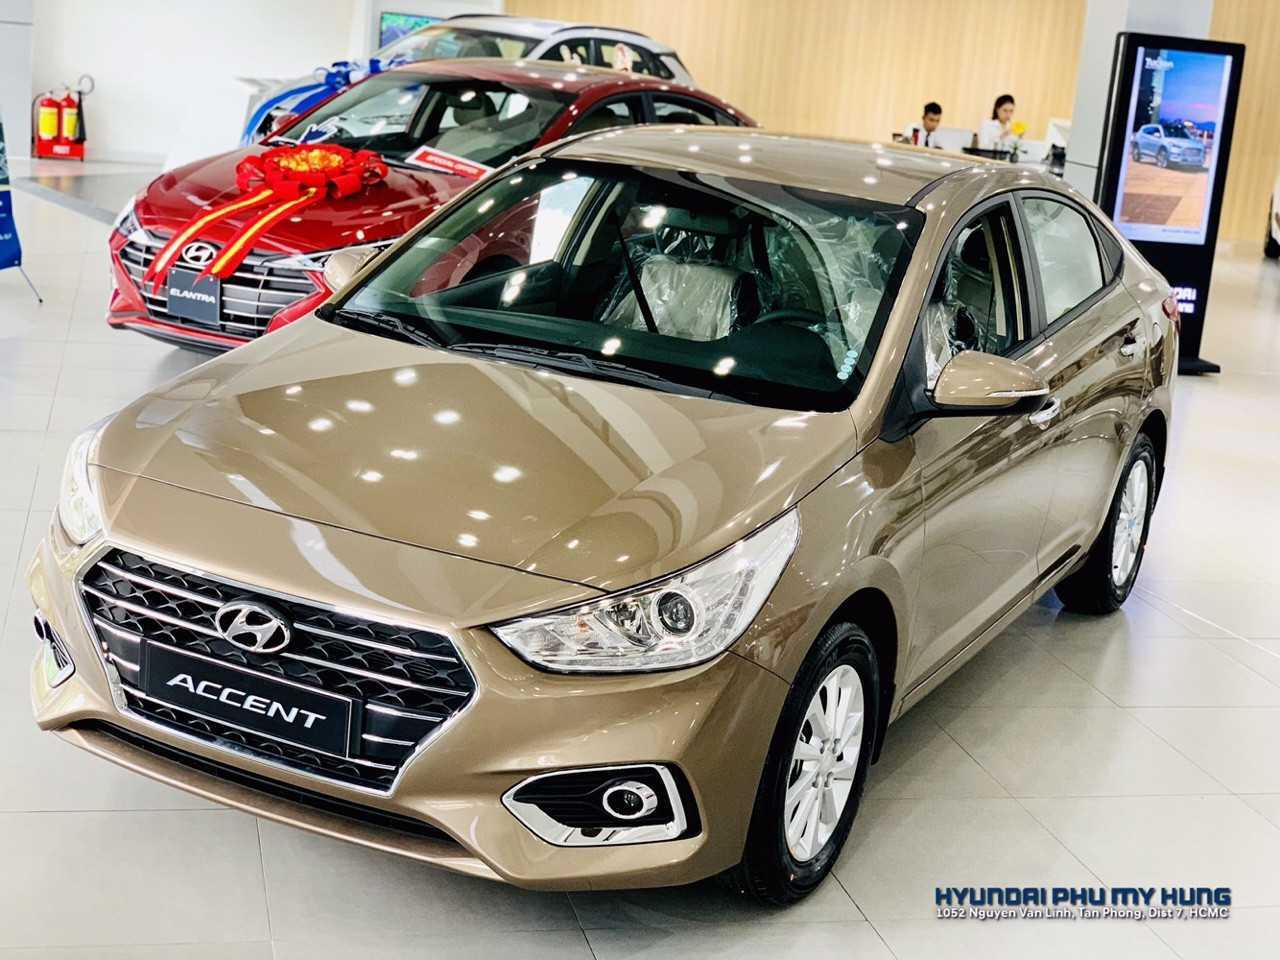 Read more about the article Hyundai Accent 2019 MT 1.4 Vàng Cát